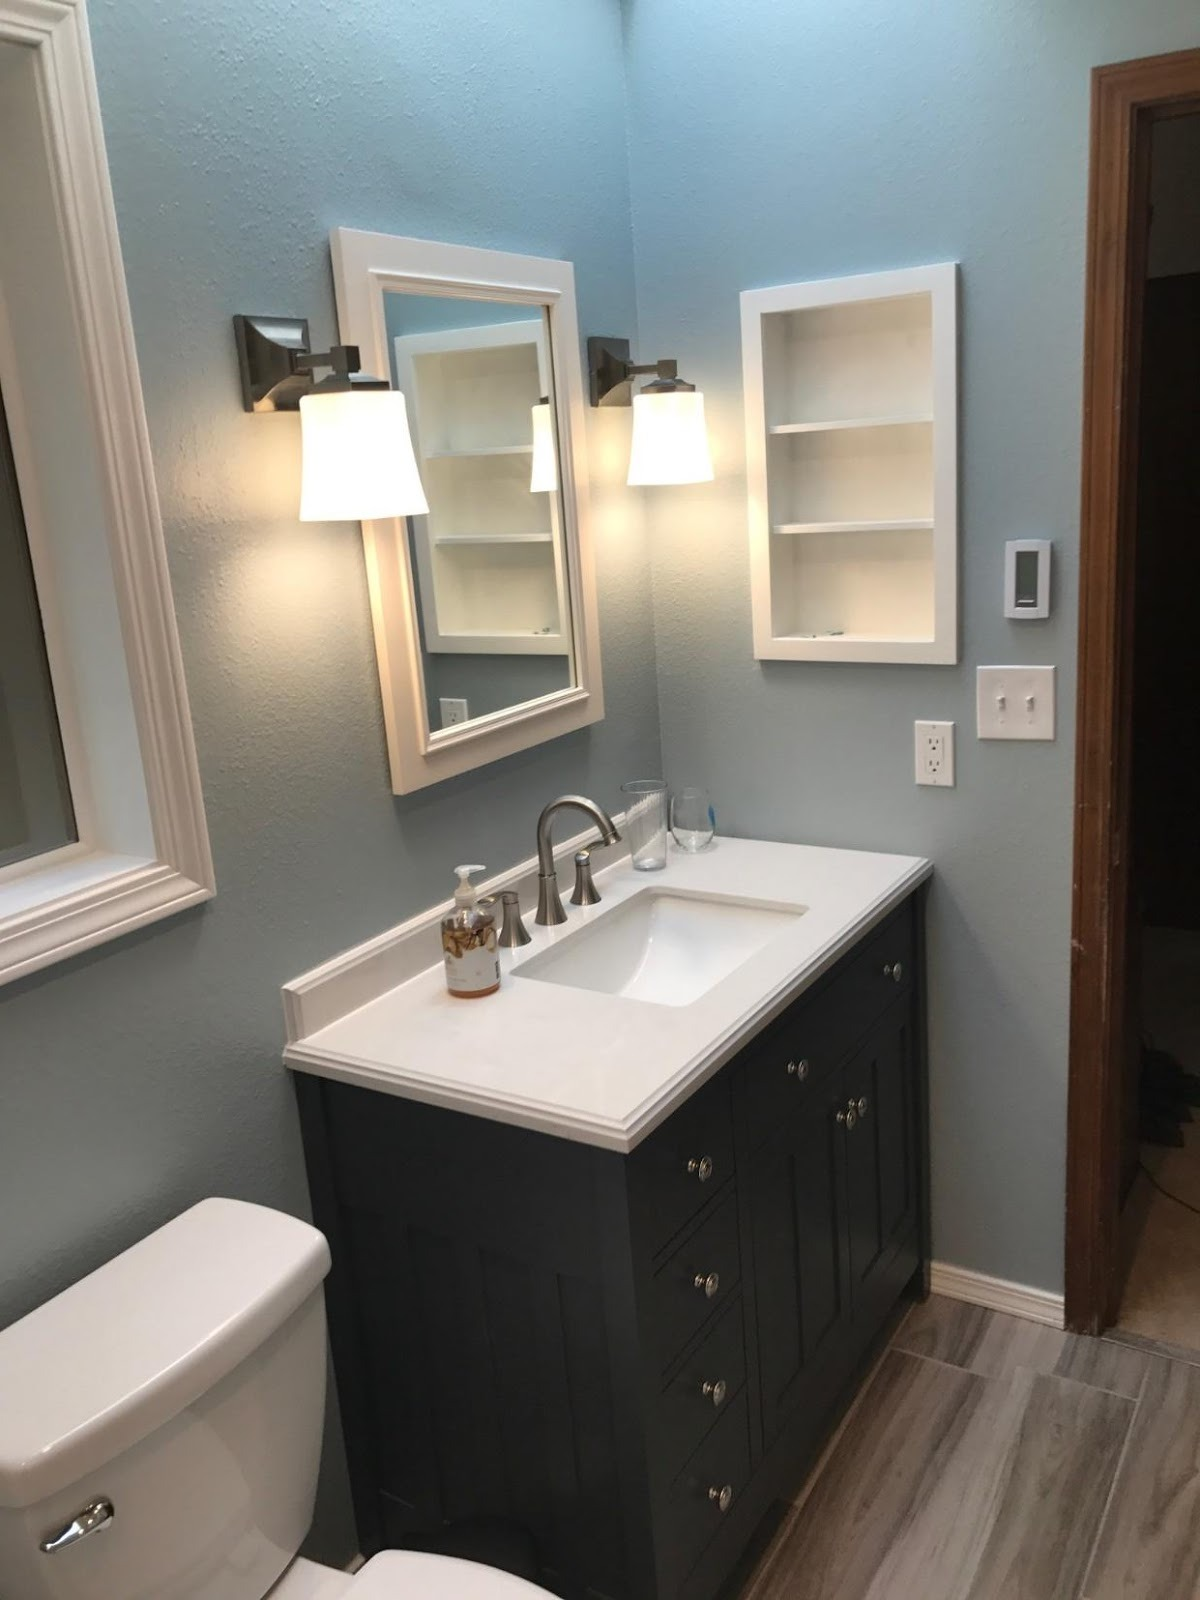 Completed Bath Vanity